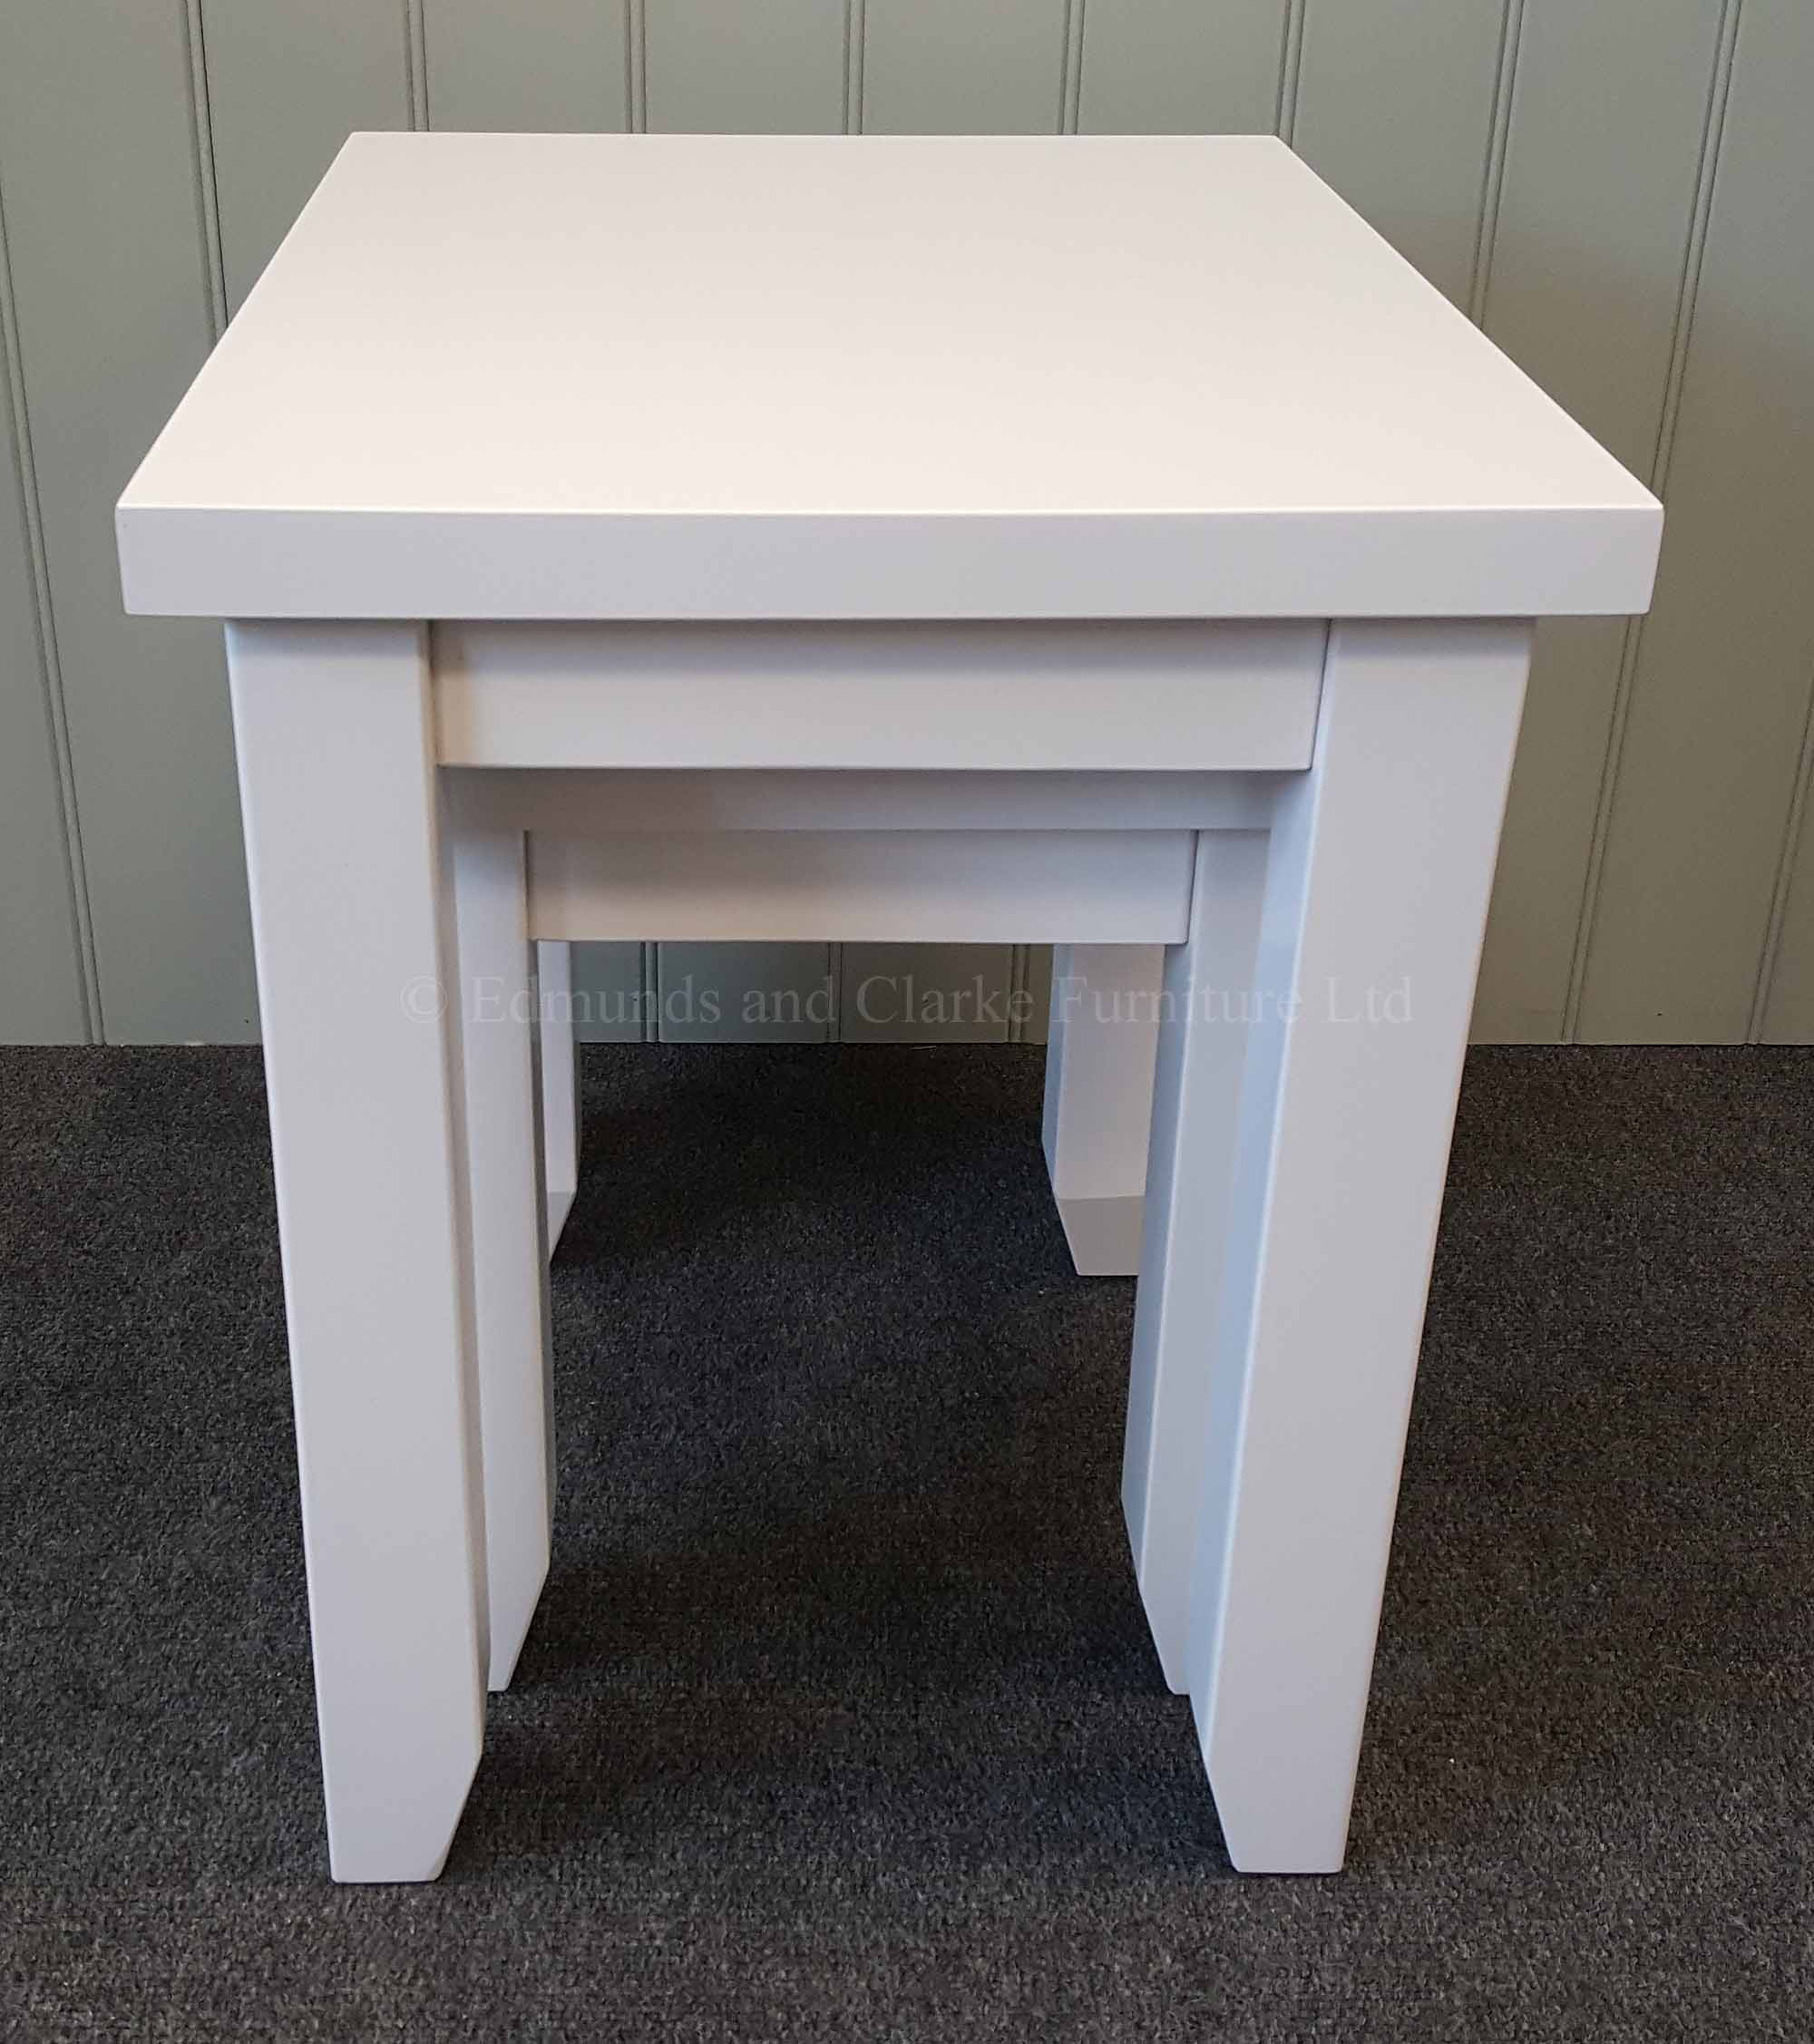 Nest of two tables painted white all over square edge design